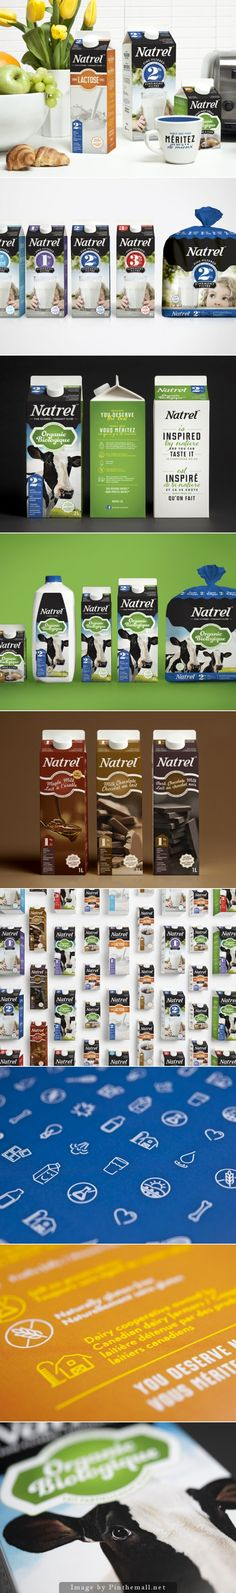 Naturel #Milk #packaging by lg2 boutique - http://www.packagingoftheworld.com/2014/11/naturel-milk.html